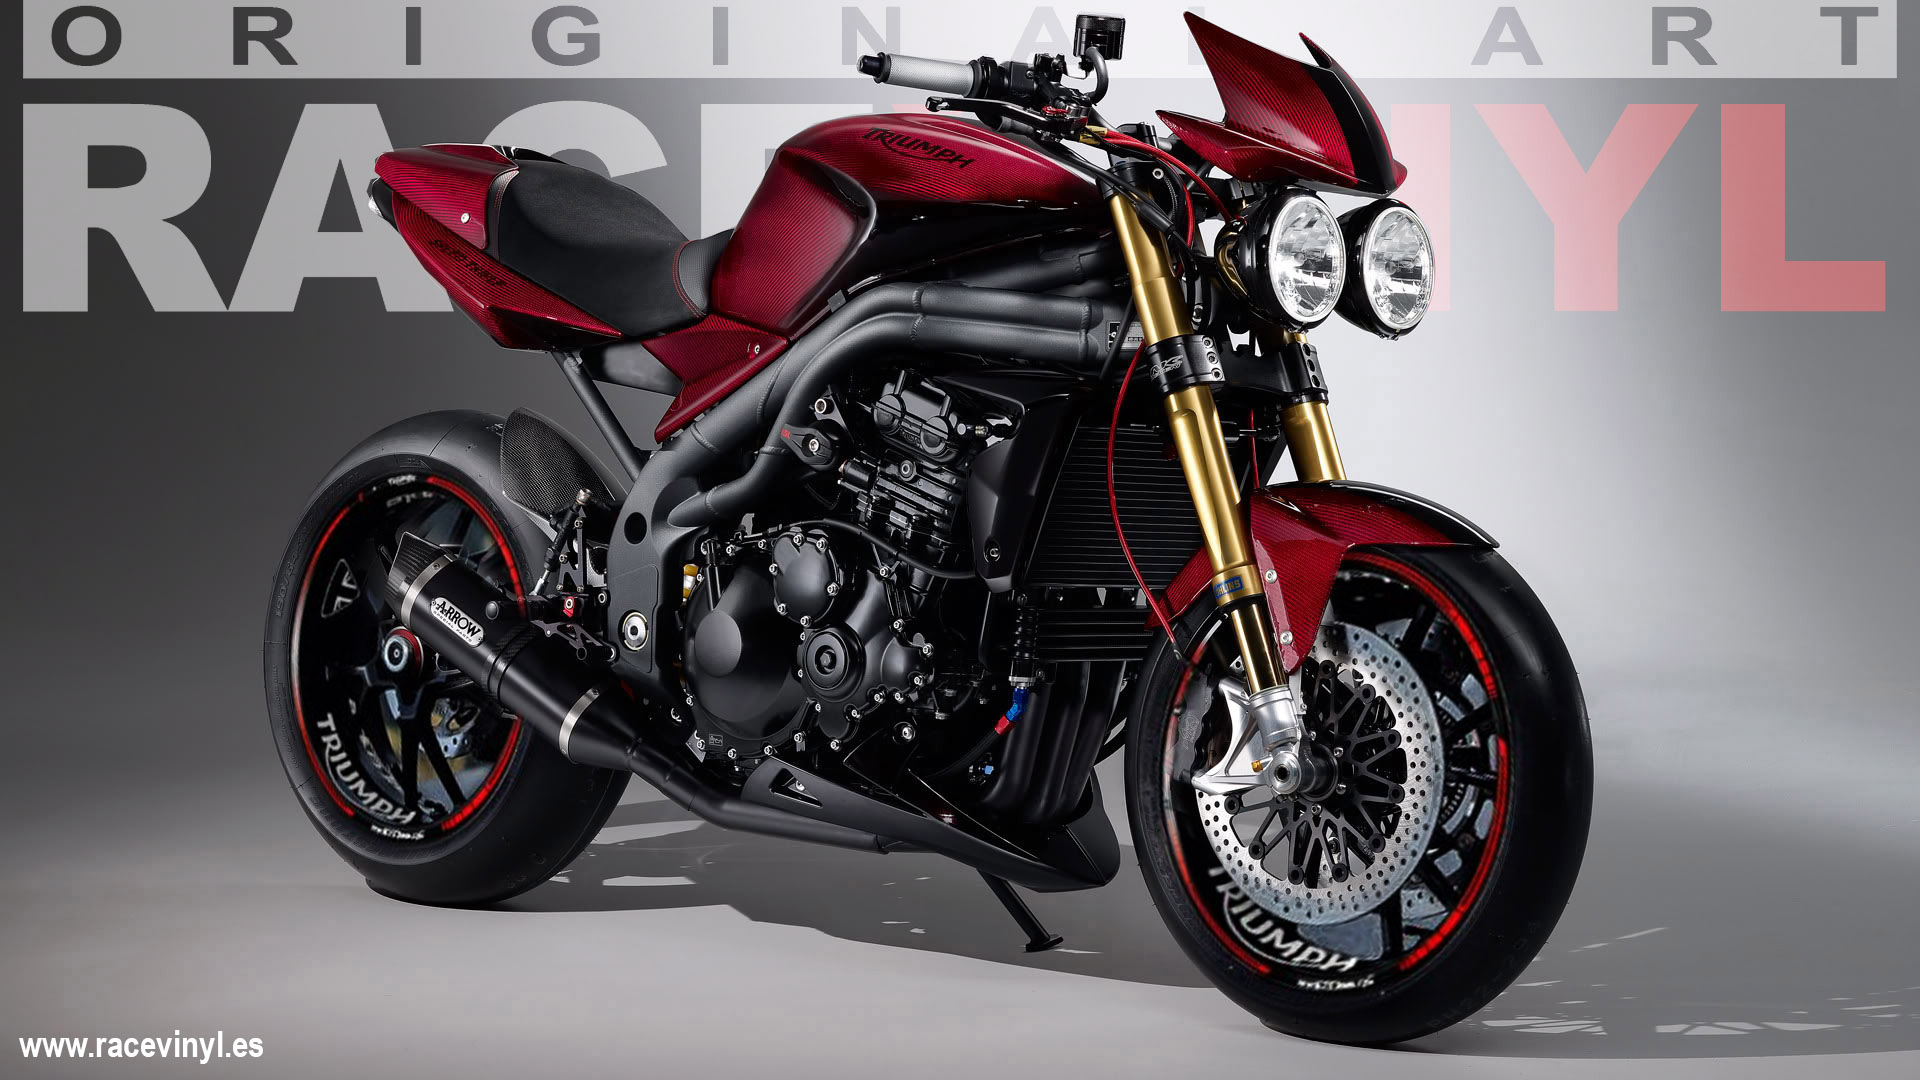 rim stickers kit pro in vinyl for Triumph Speed Triple